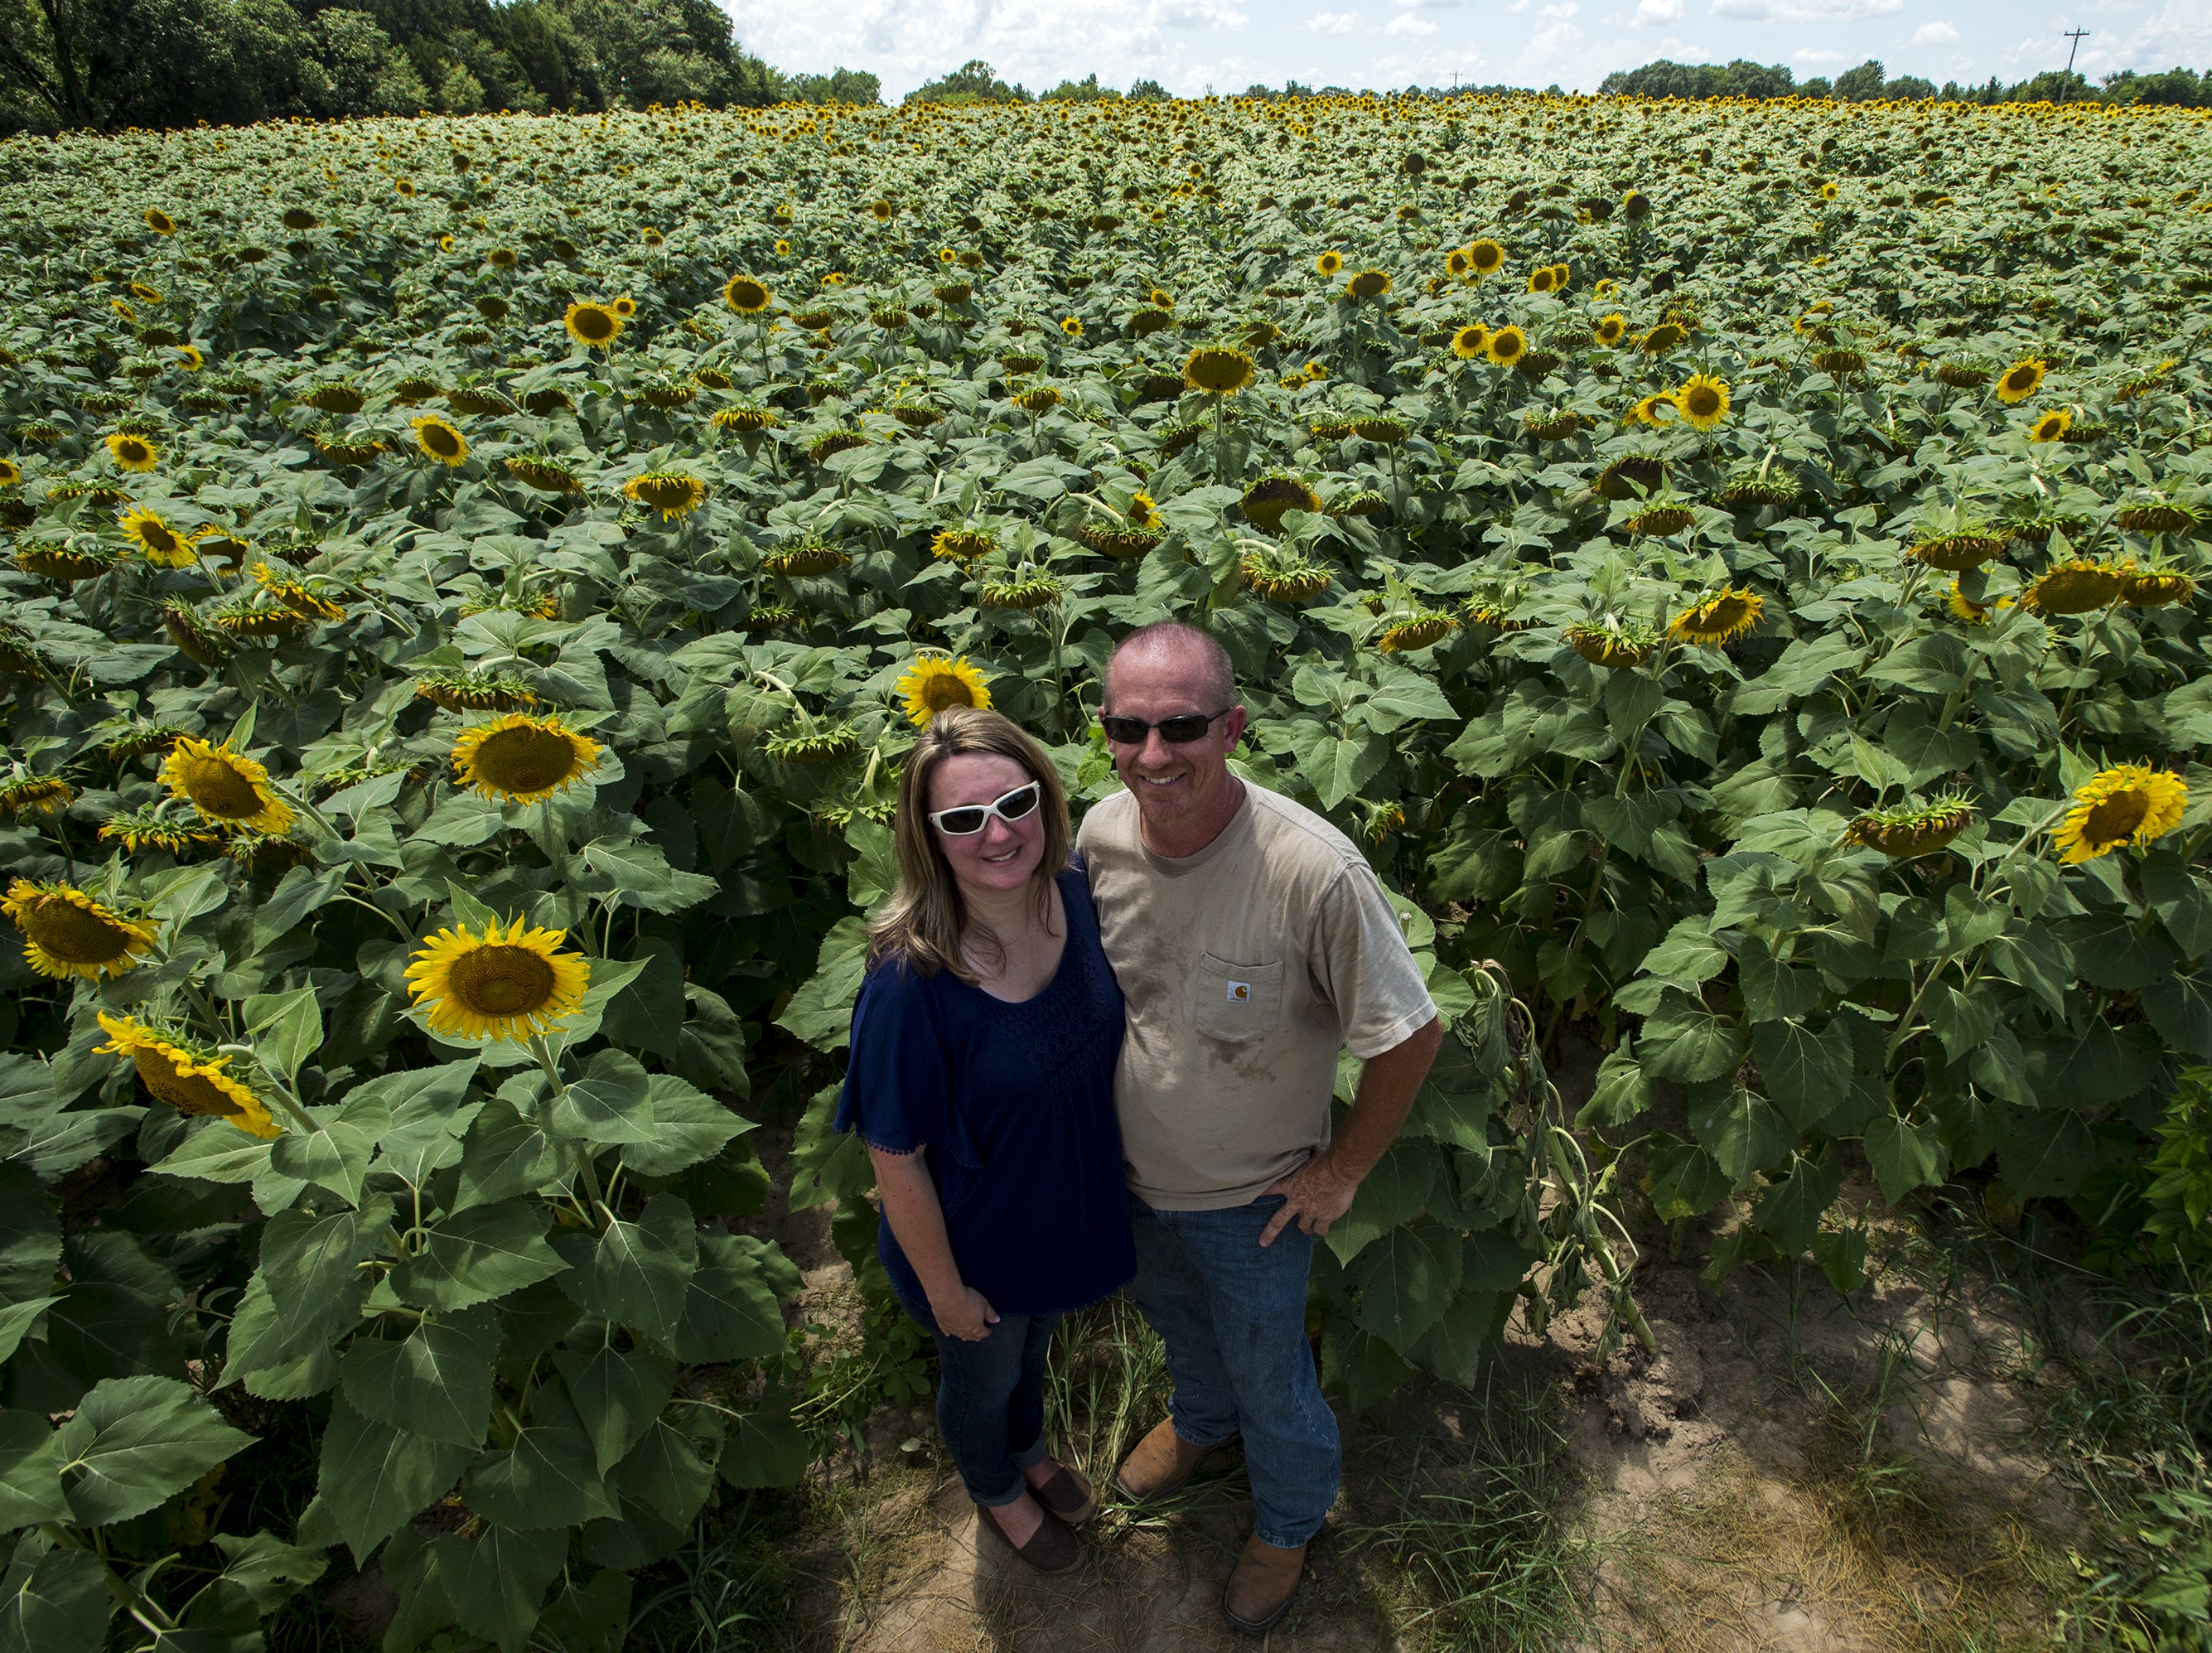 Kim and Todd Sheridan stand in their 42-acre sunflower field about six miles west of Autaugaville. The colorful field has attracted many visitors interested in taking pictures.